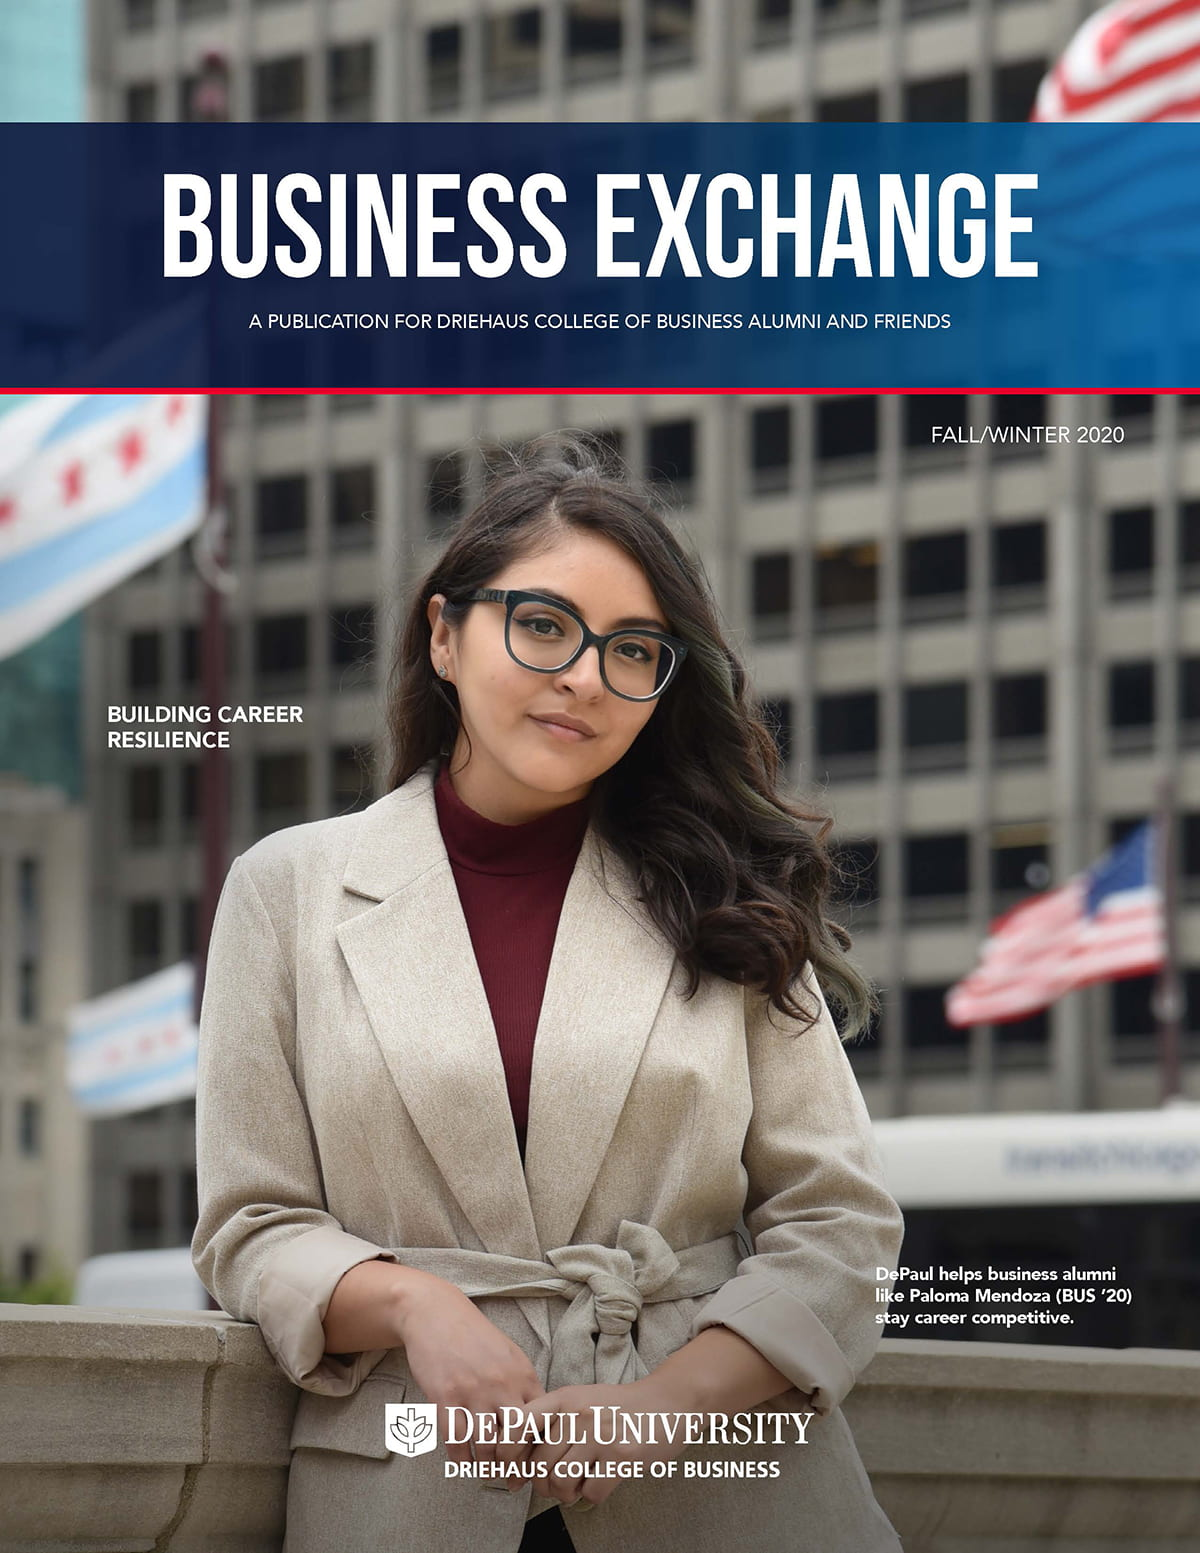 Fall/Winter 2020 Business Exchange issue